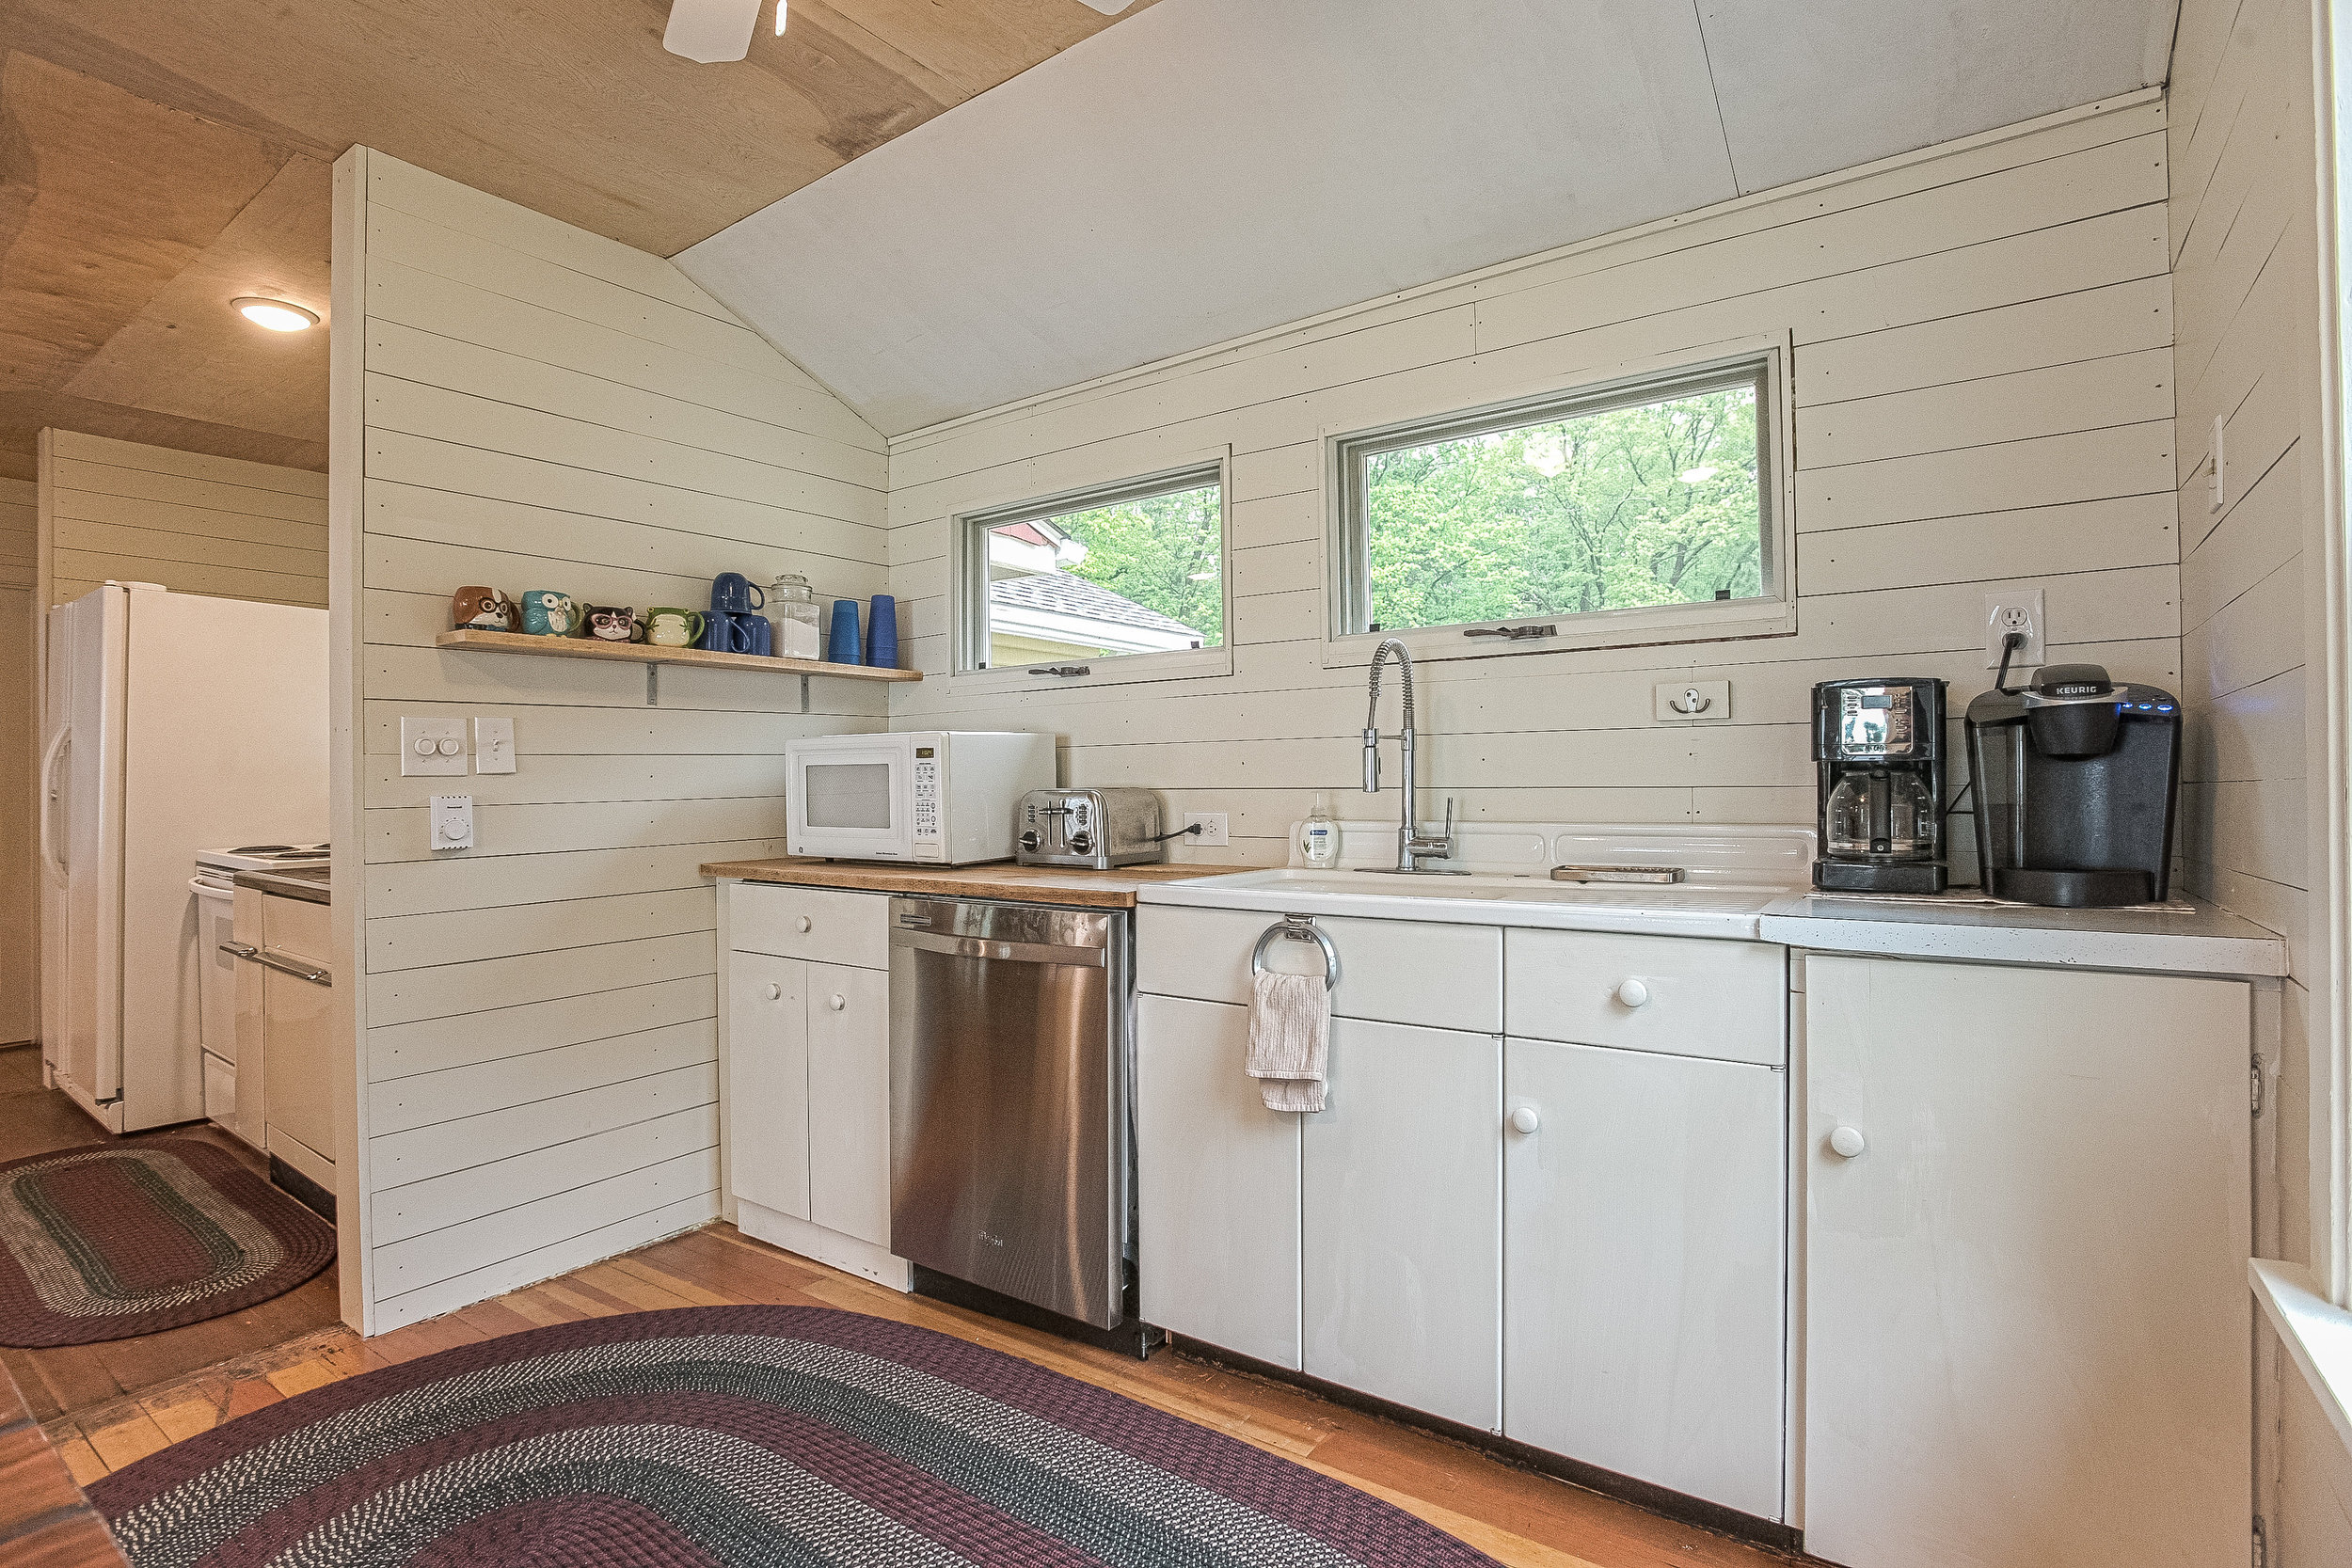 Efficient clean up station with modern dishwasher and vintage farm sink doubles as coffee hub with Keurig, Mr. Coffee and lots of oversized mugs.